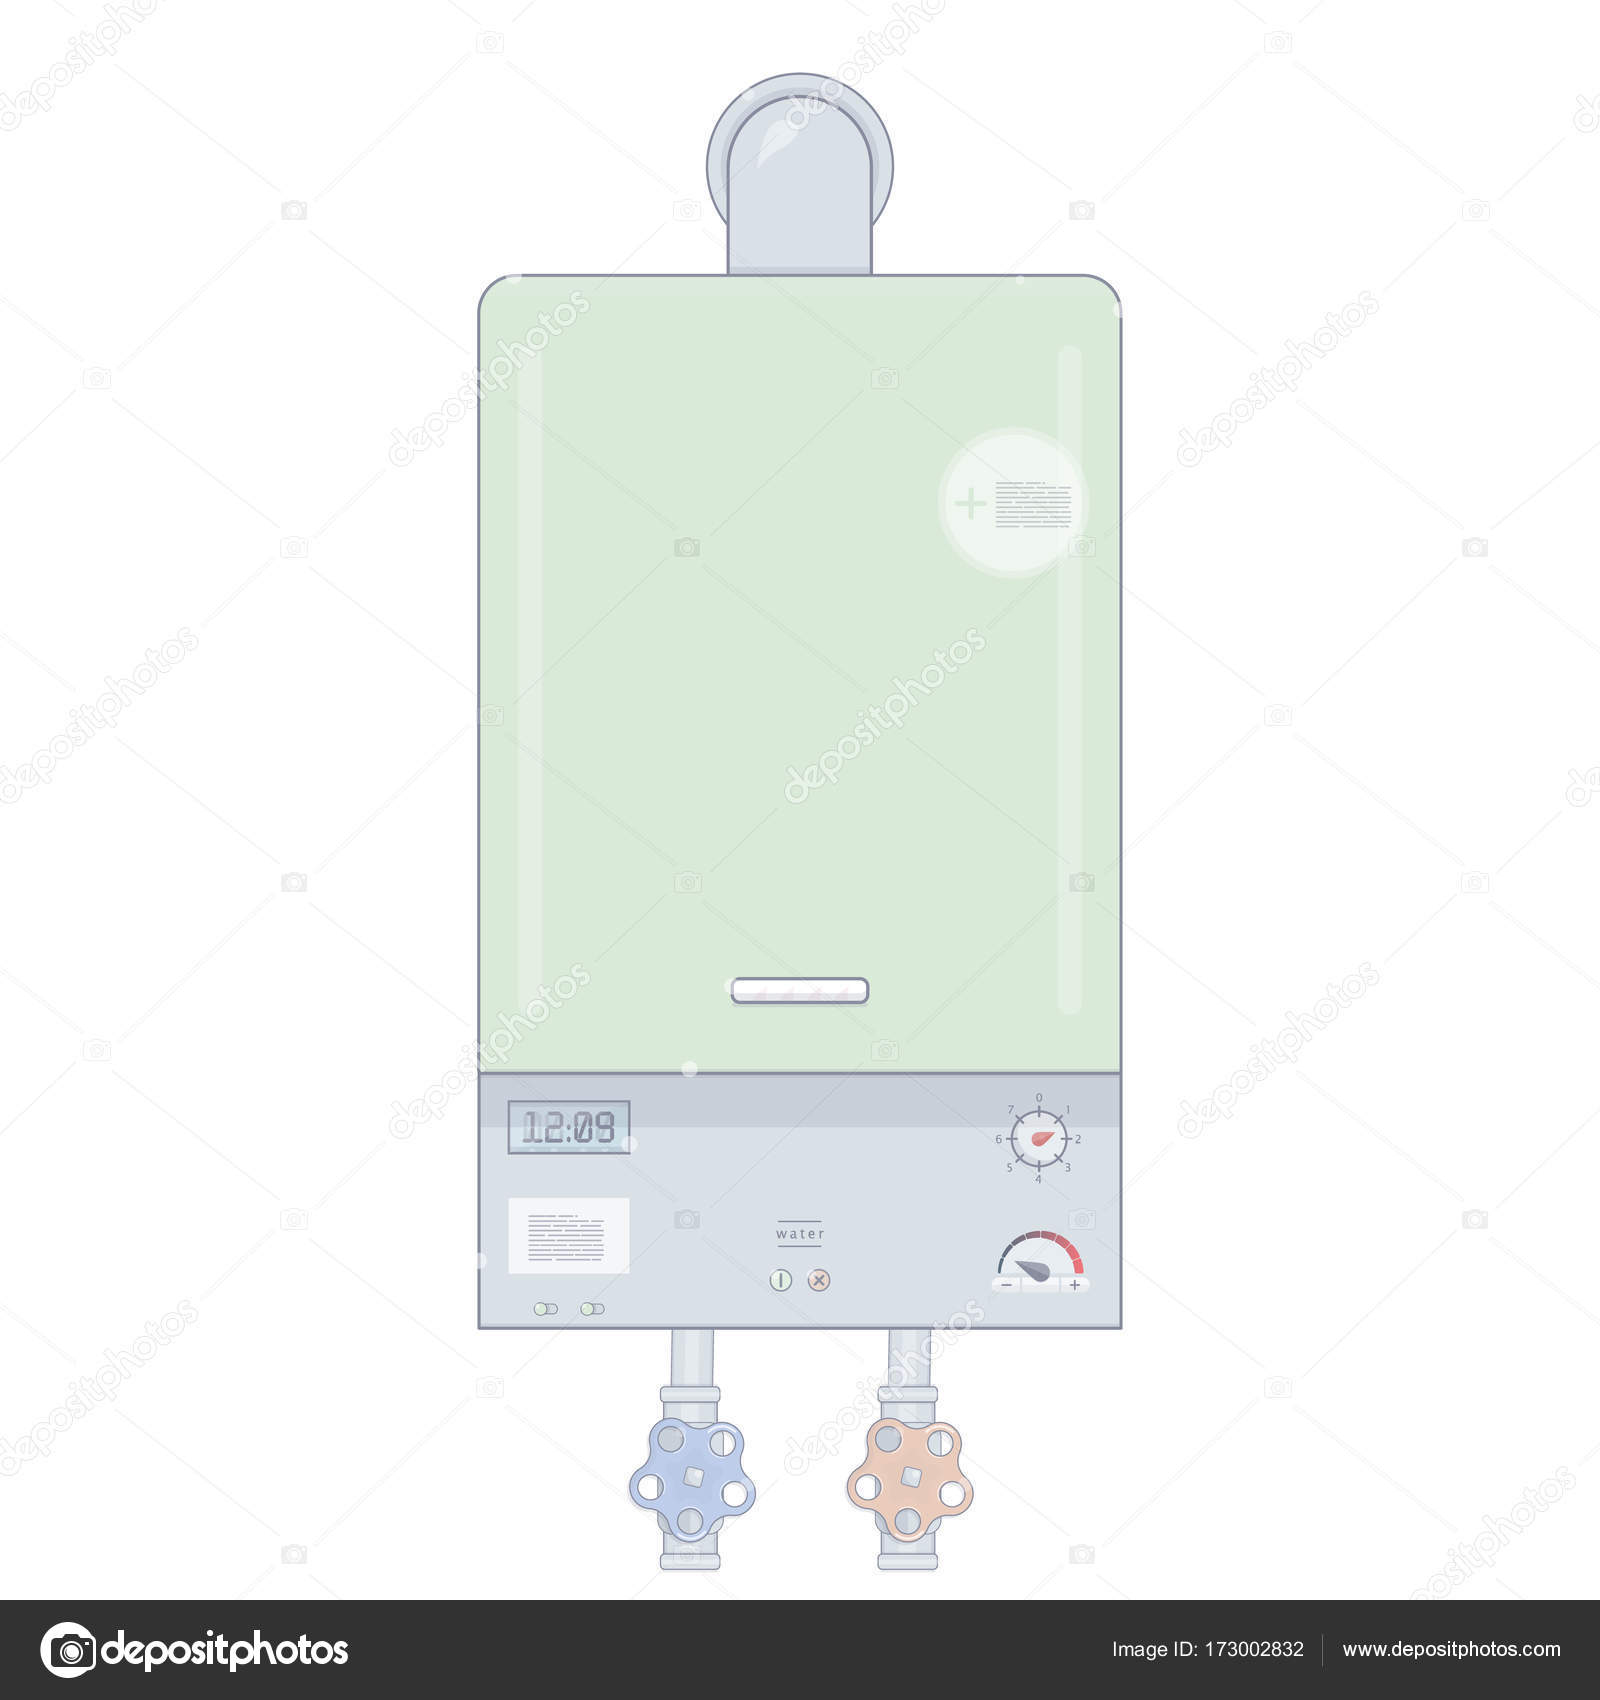 Gas boiler. Heating the house. Cartoon style. Illustrations for the ...